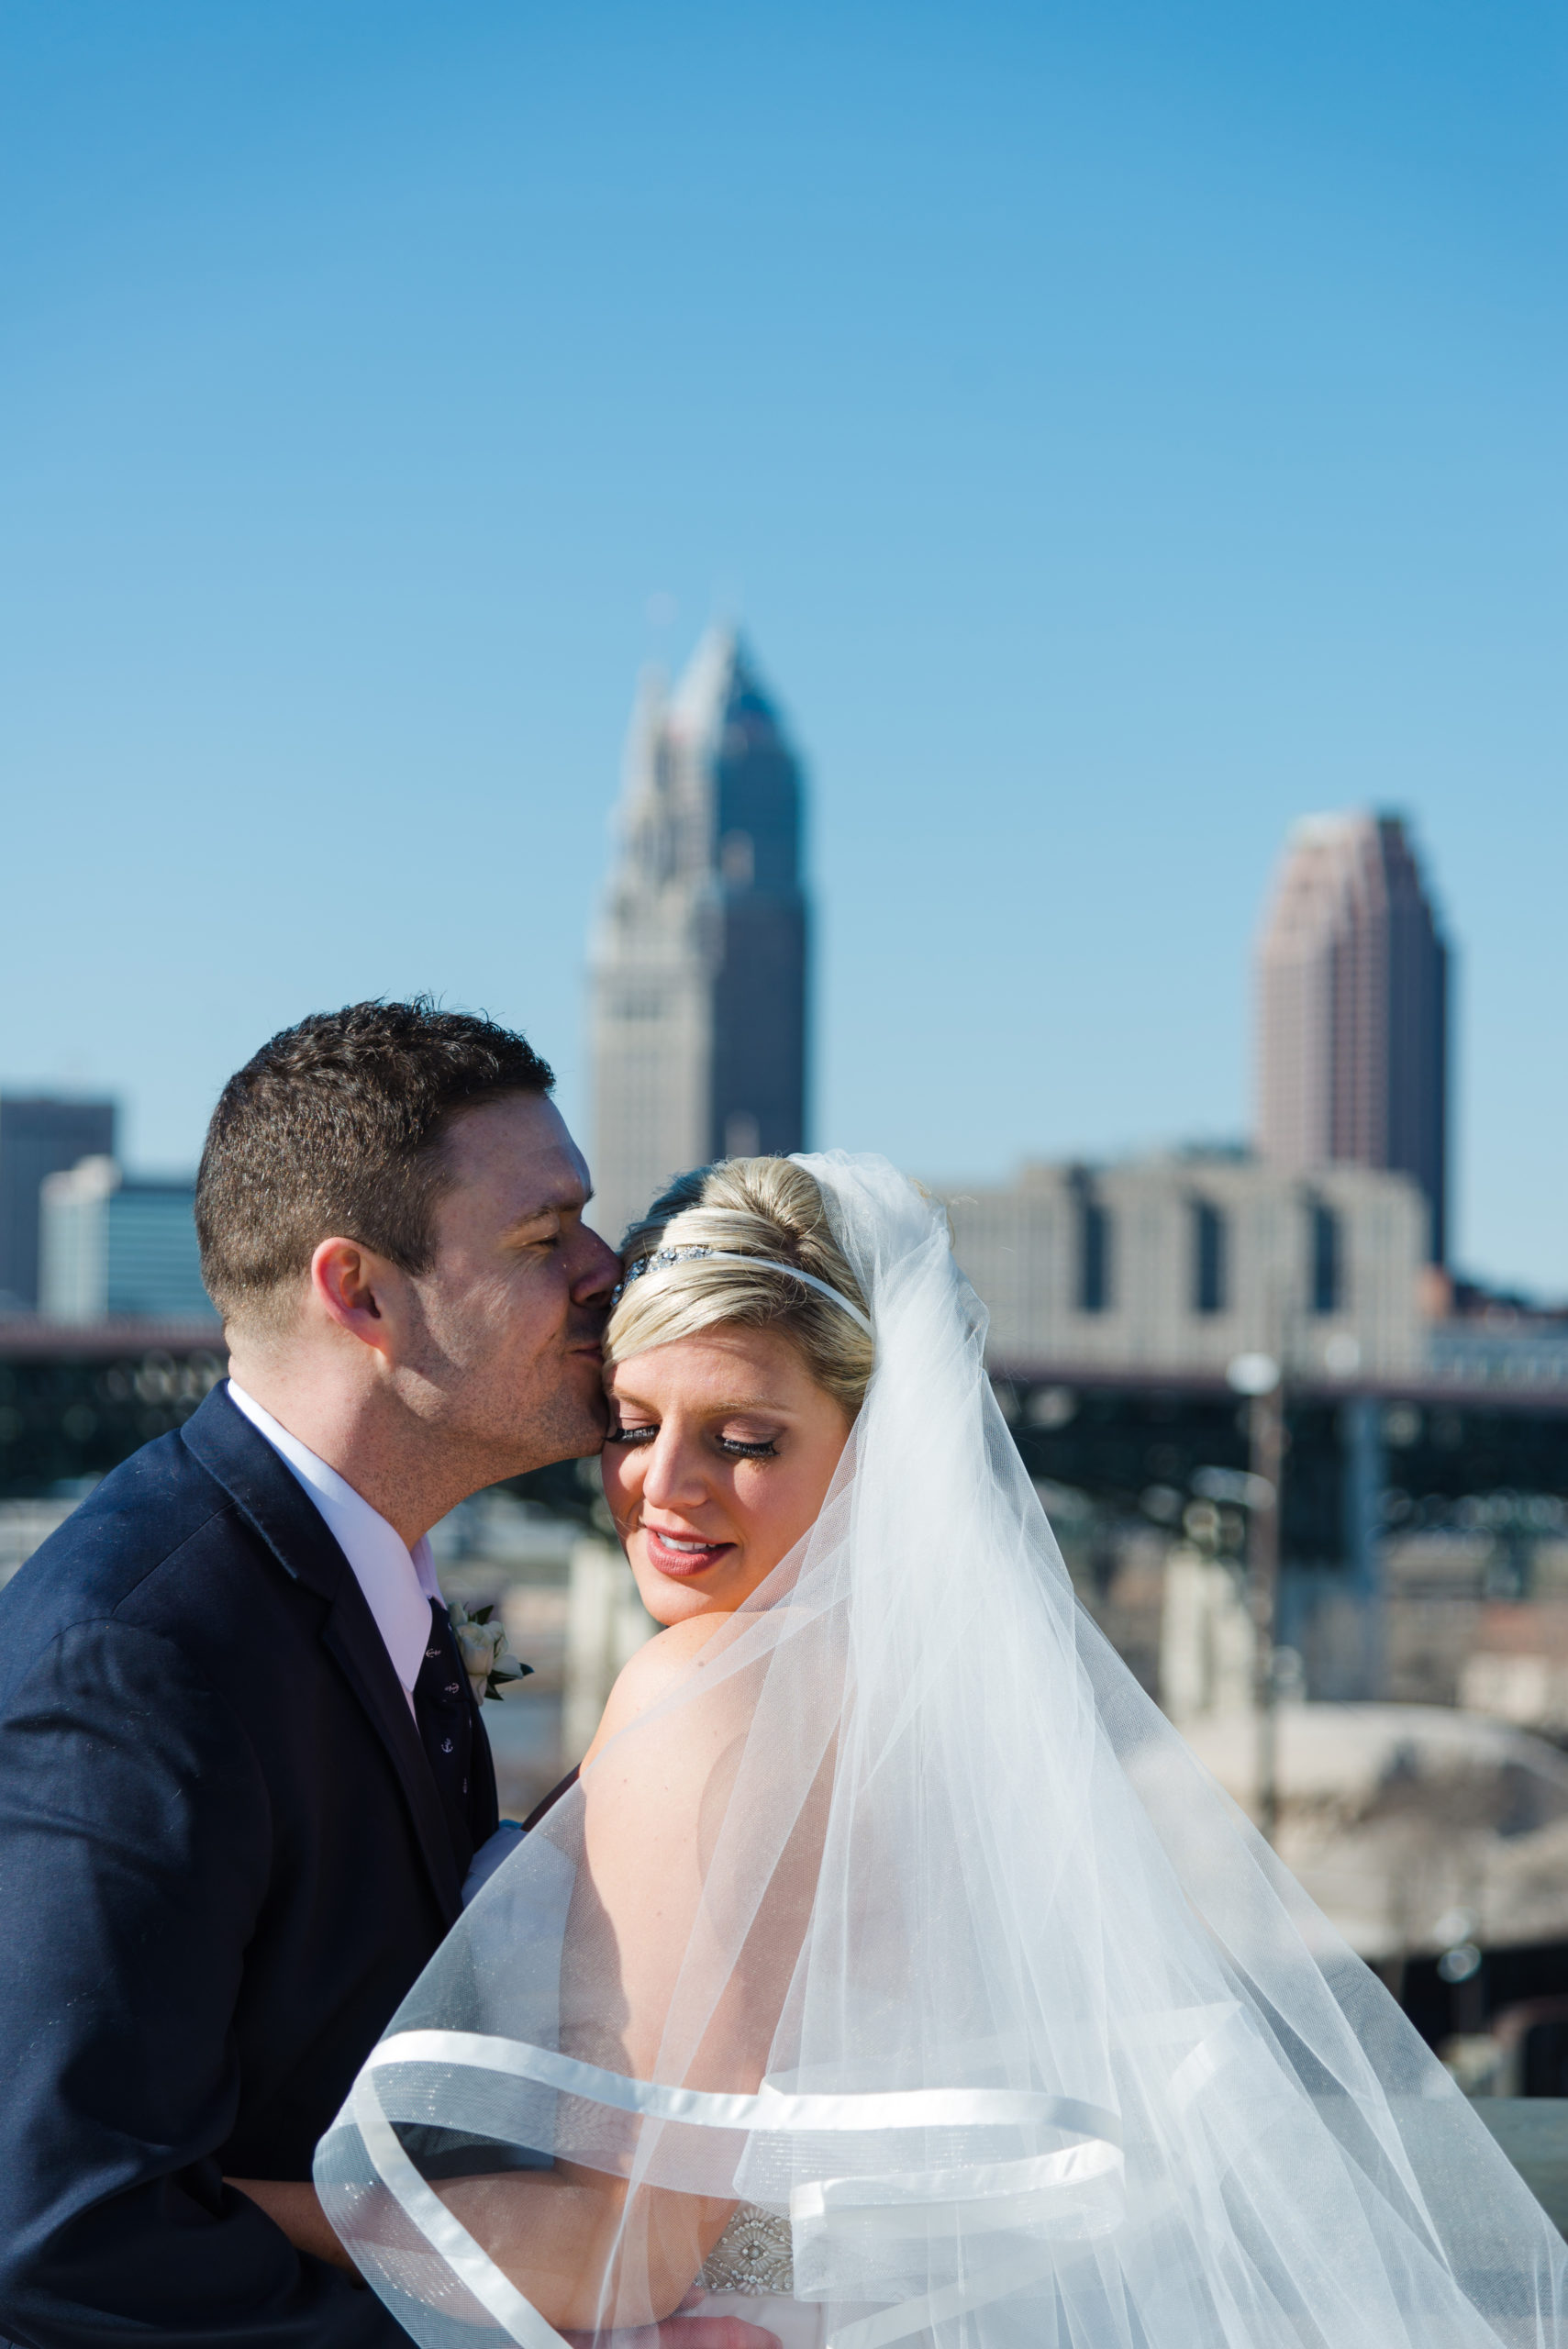 Caucasian man kissing woman on head in front of cleveland skyline